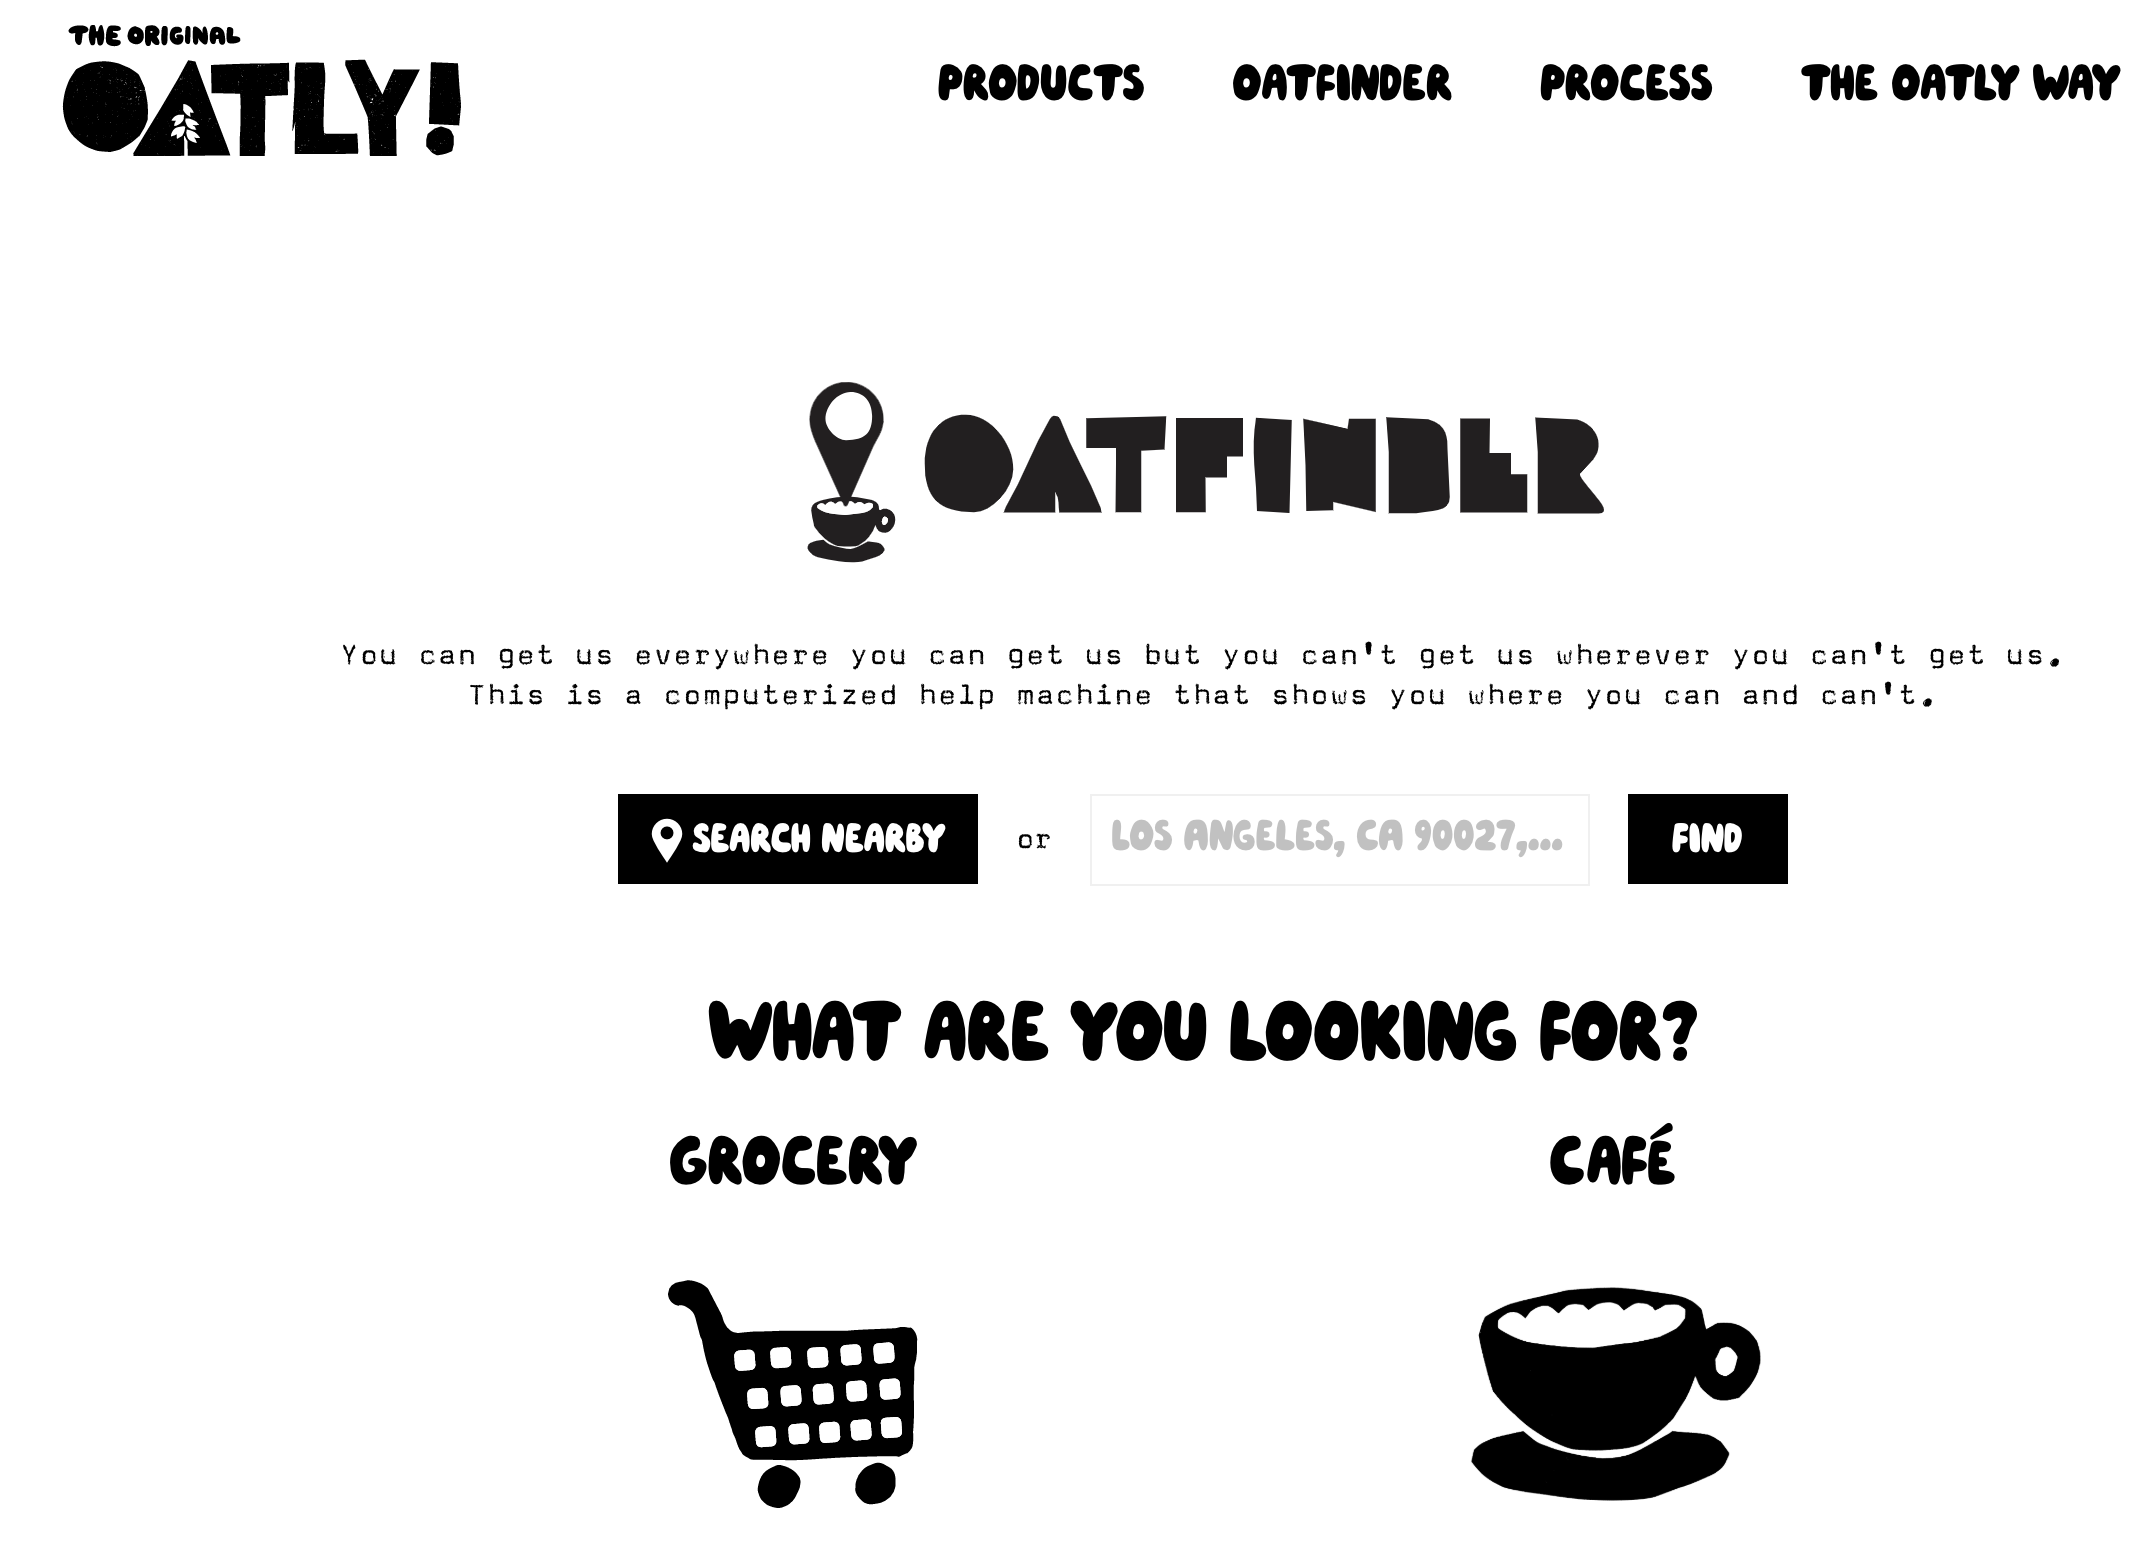 A clever microcopy example from Oatly